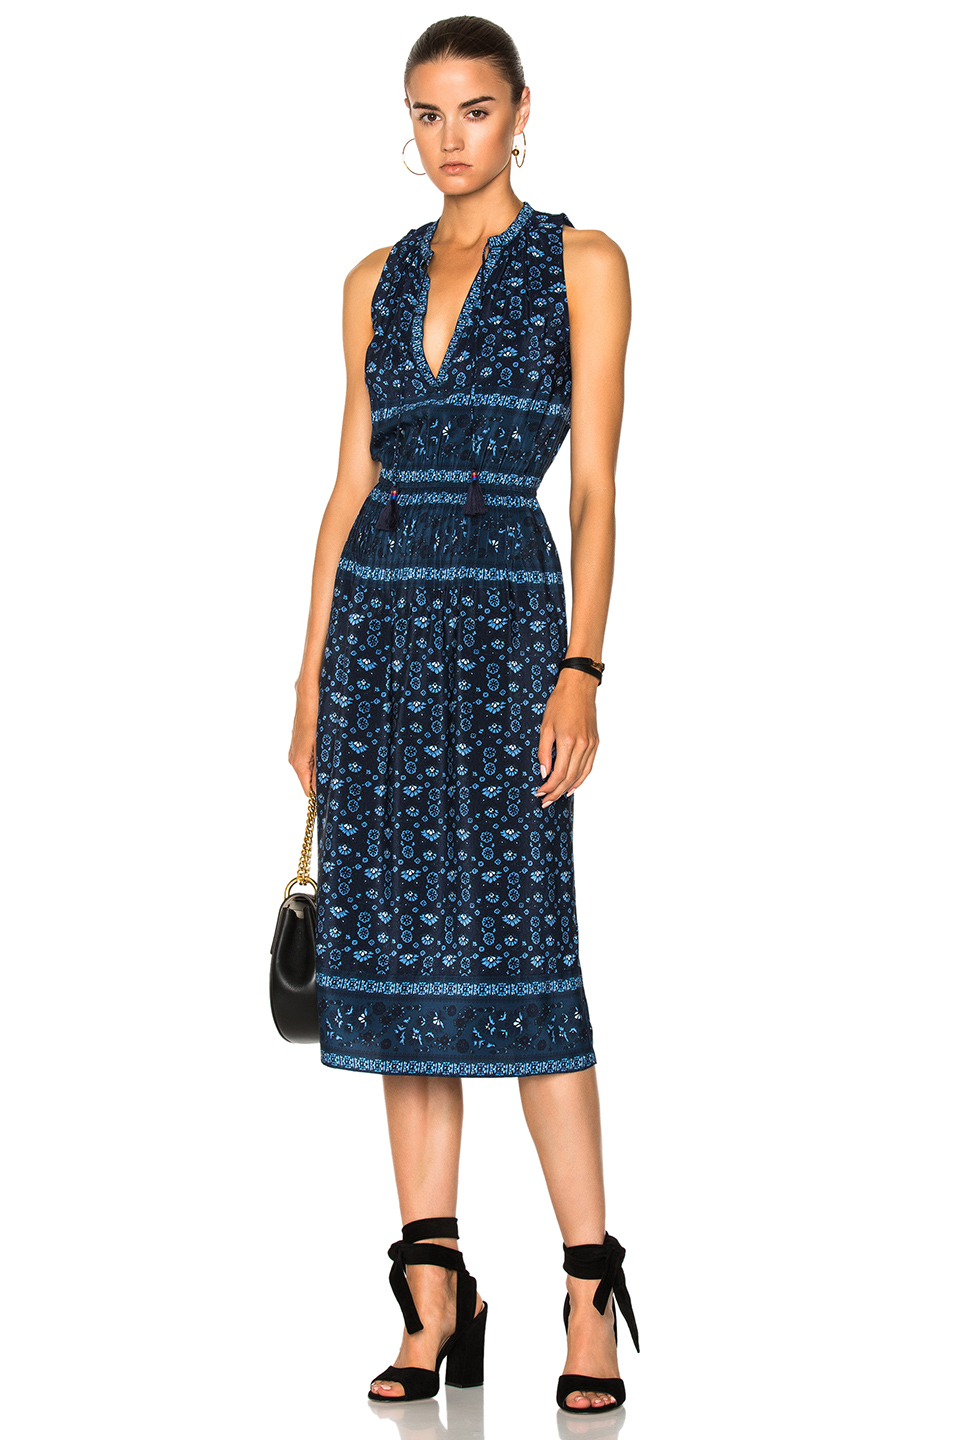 Sea Sleeveless Pintucked Dress in Blue,Floral